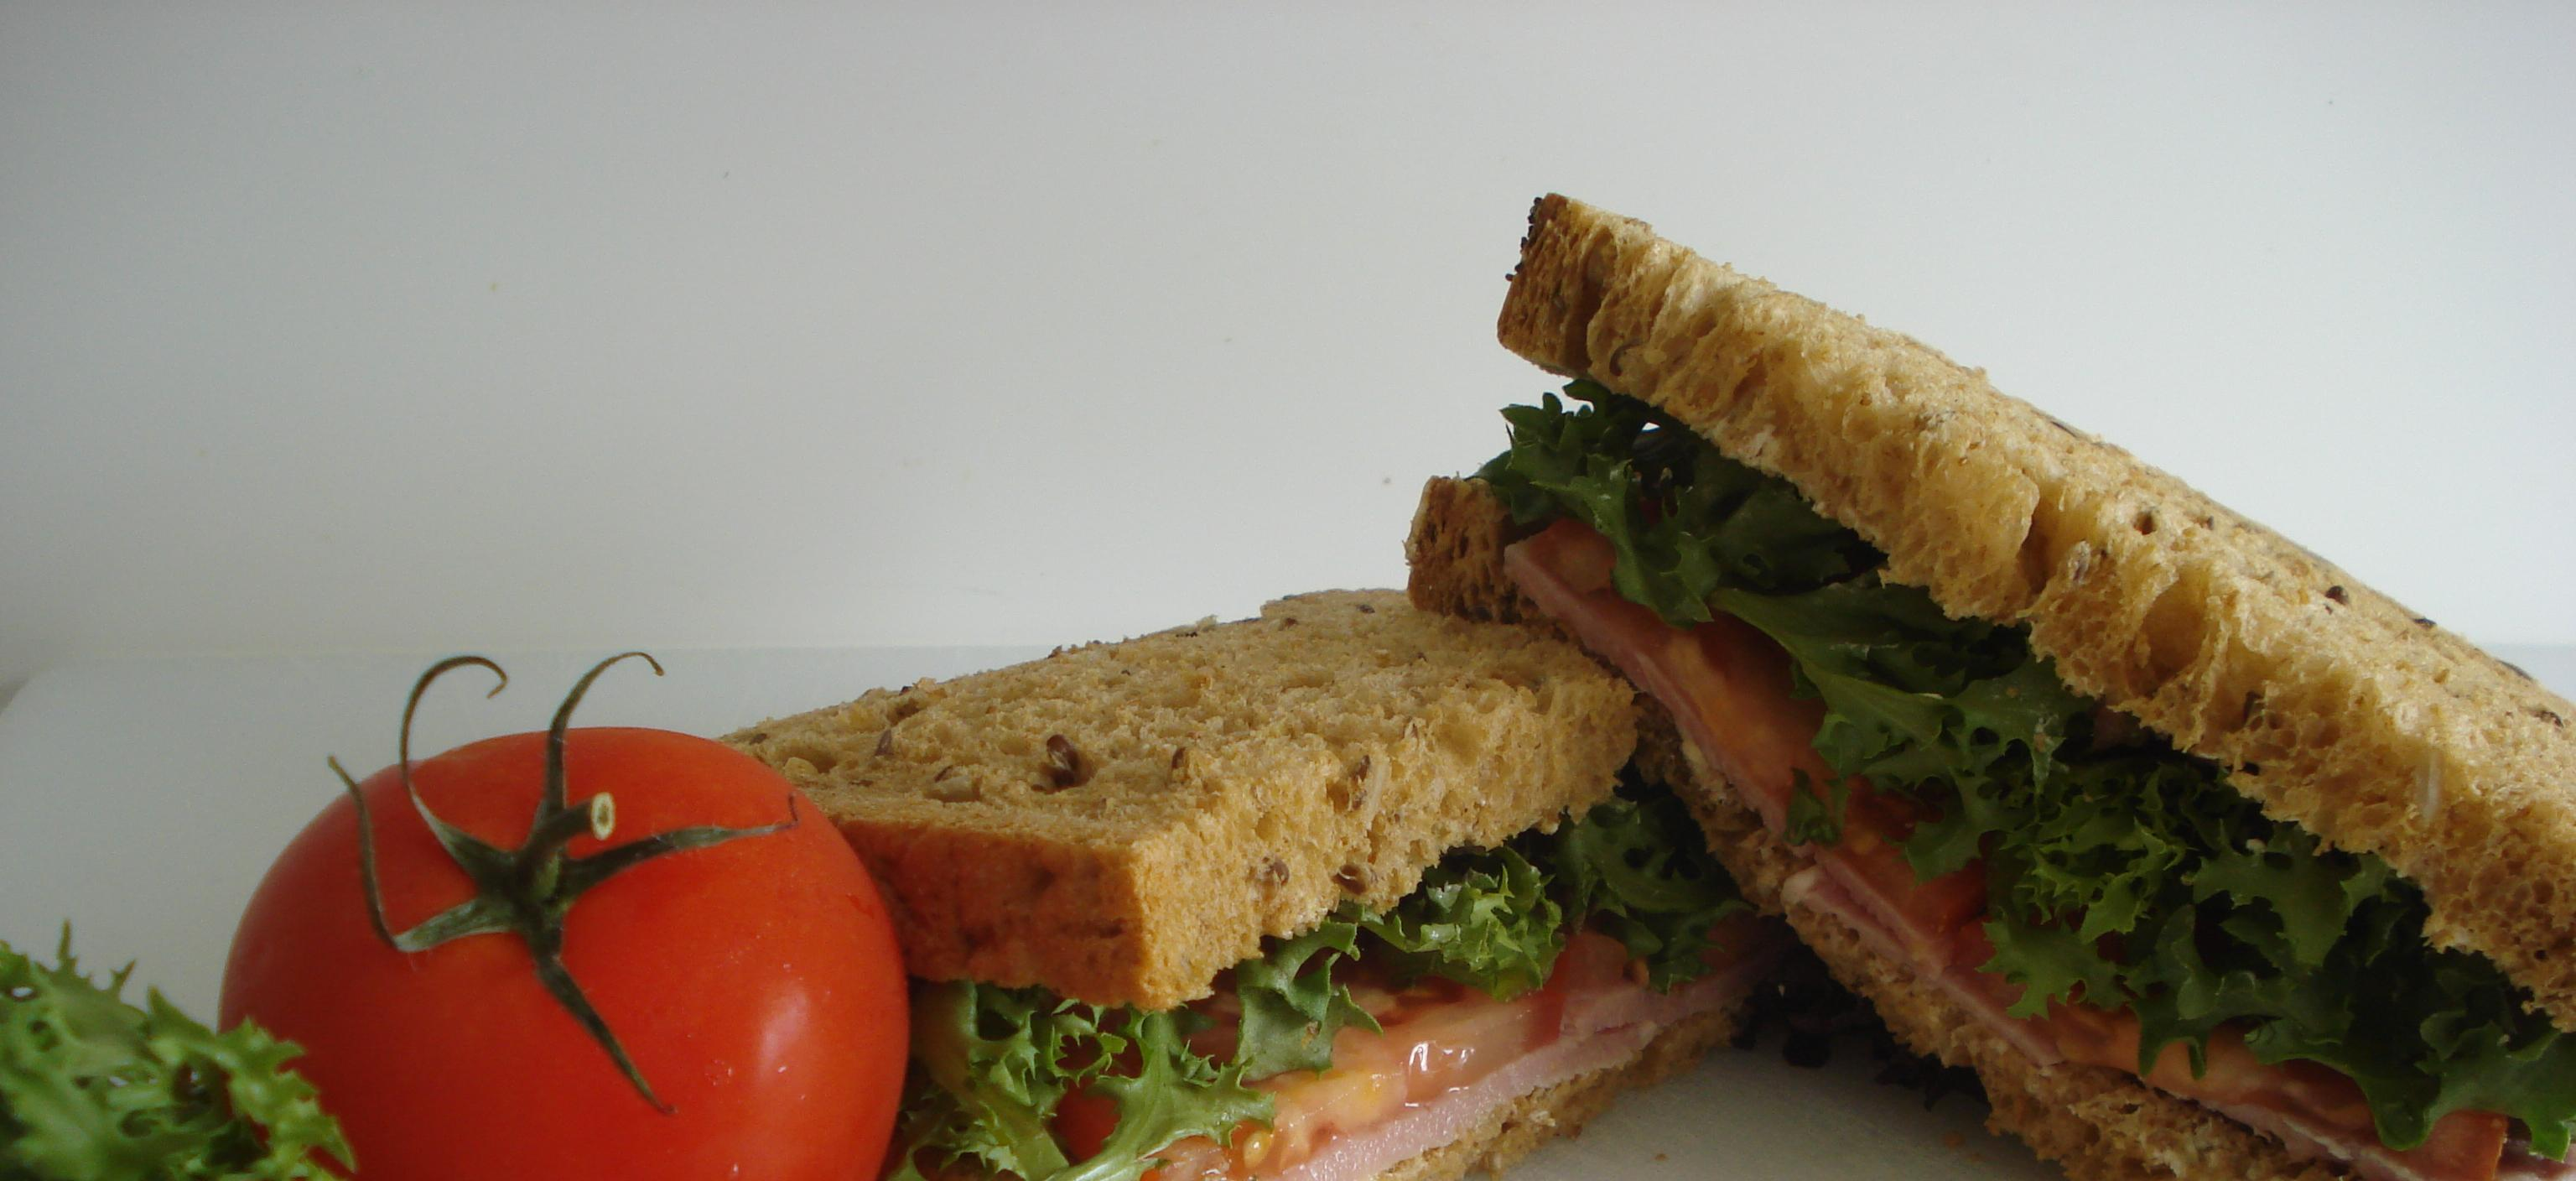 Picture of our sandwich of the week, bacon, lettuce and tomato in multigrain bread